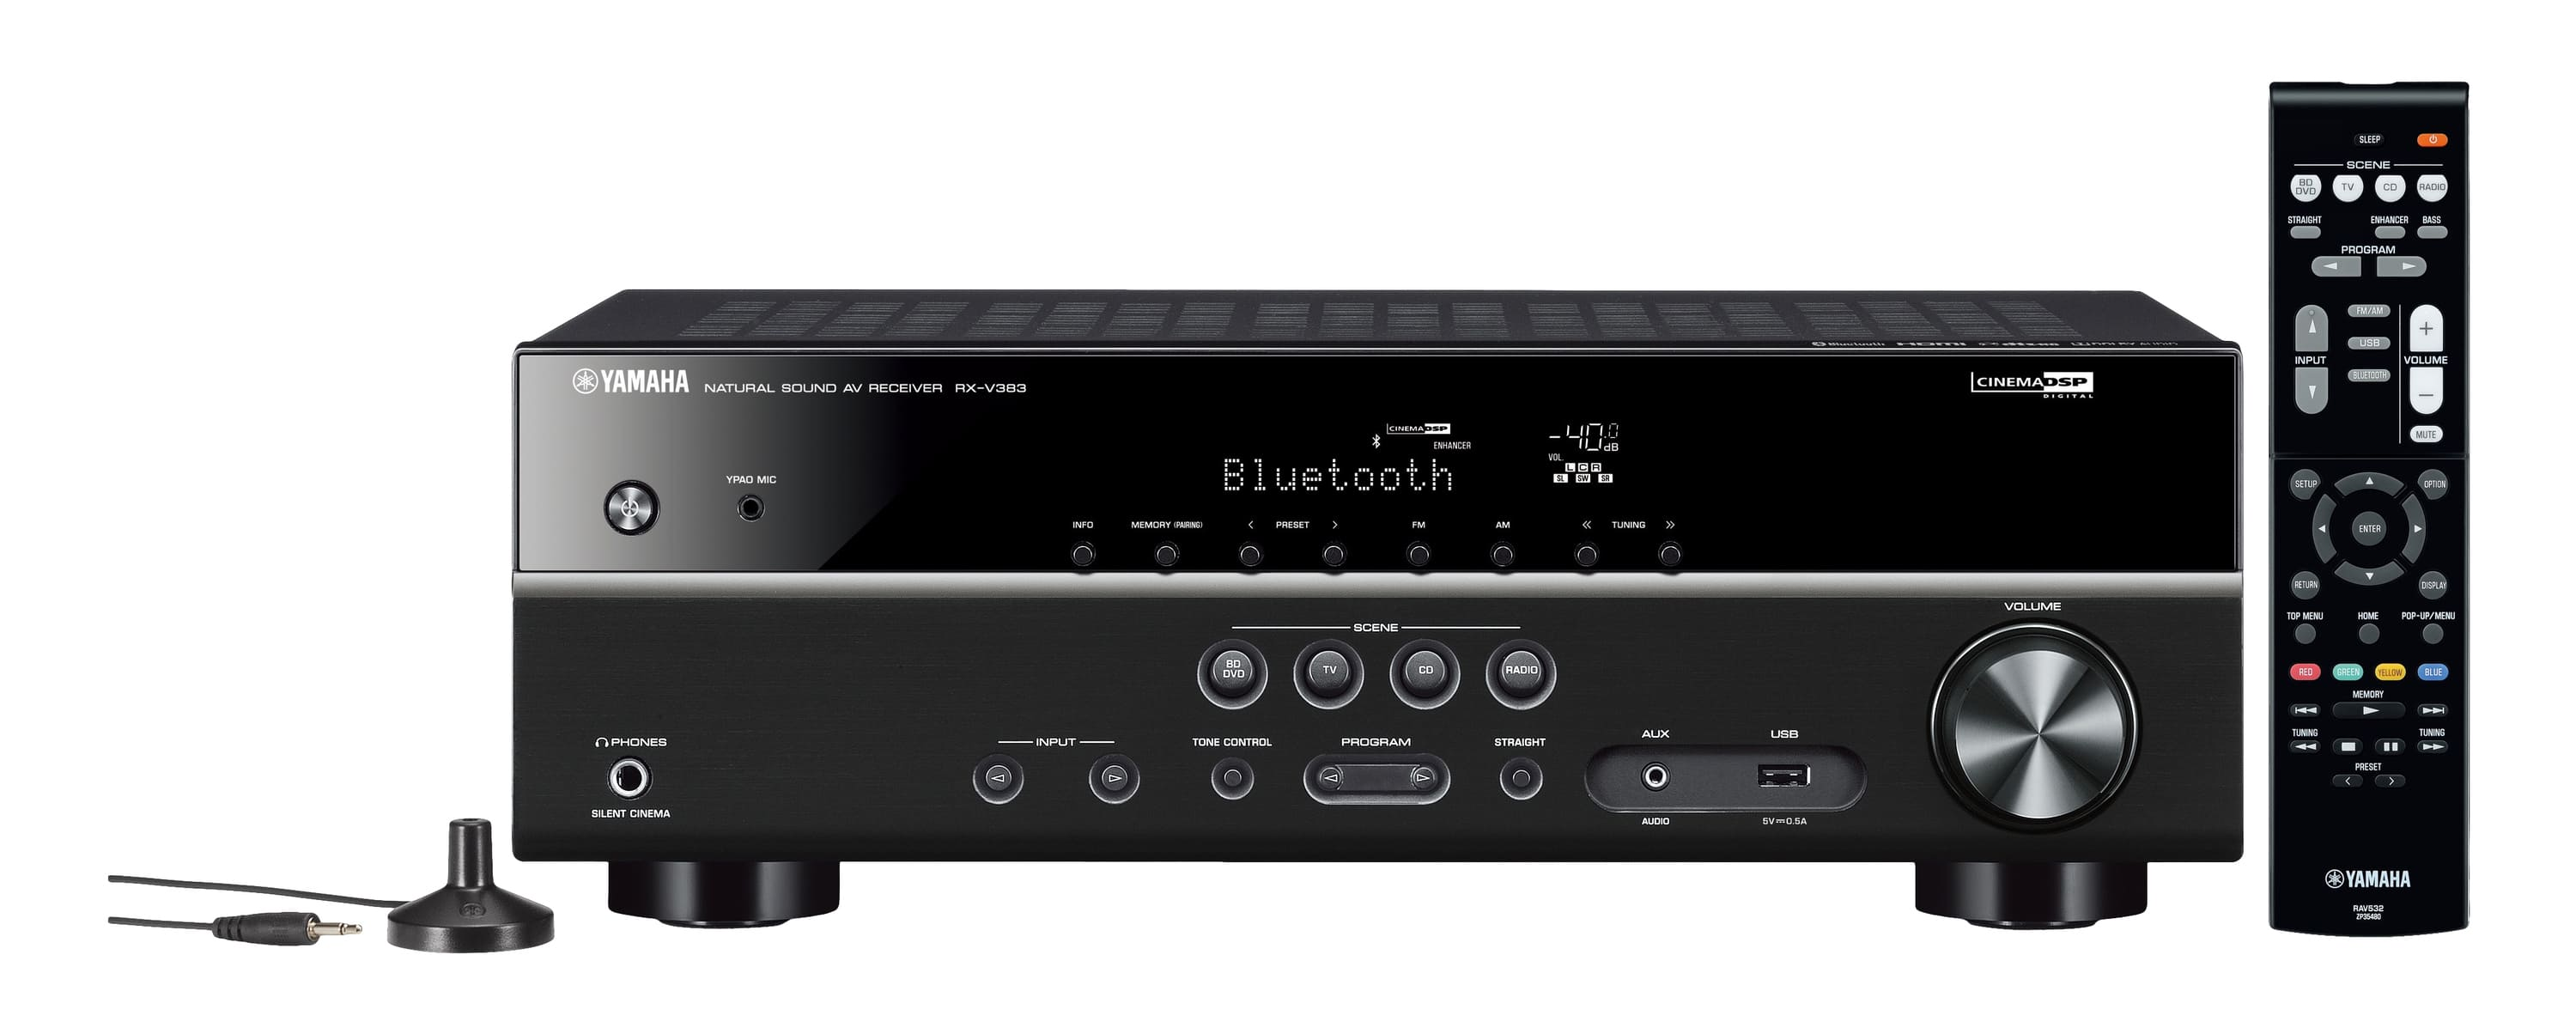 Yamaha RX-V383 AV-Receiver 5-Kanal Surround Sound Bluetooth für 369,00 Euro